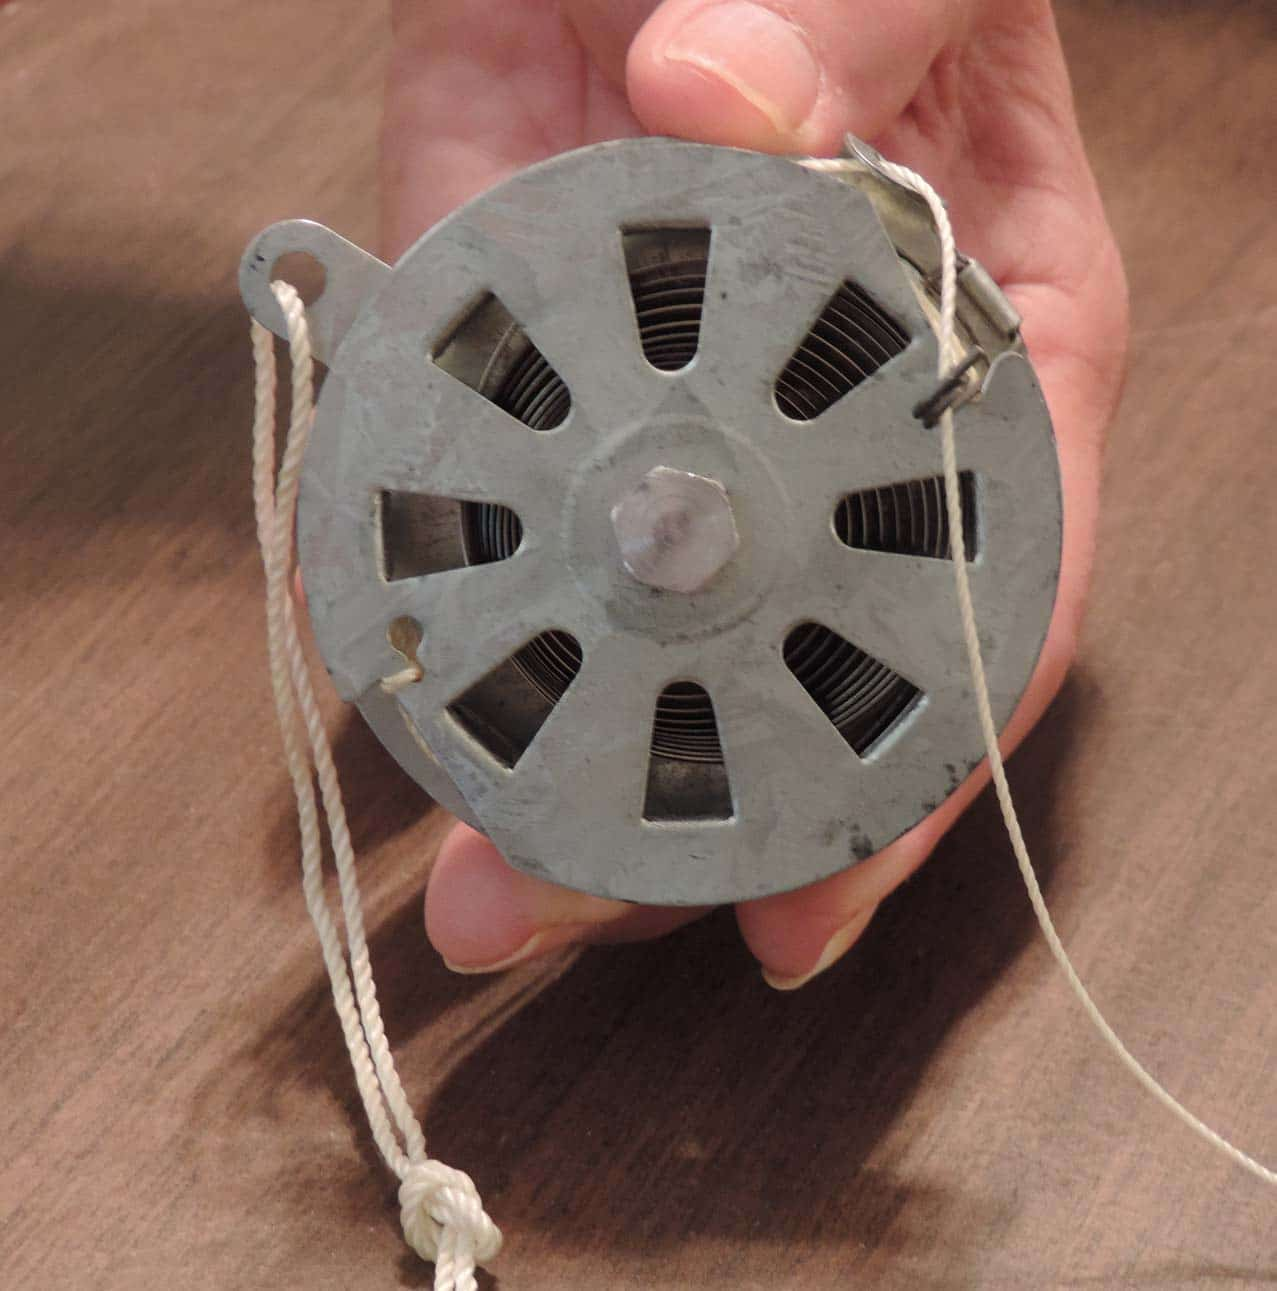 Yoyo Fishing Reels Can Be Used For Fishing Snares Or Warning Devices